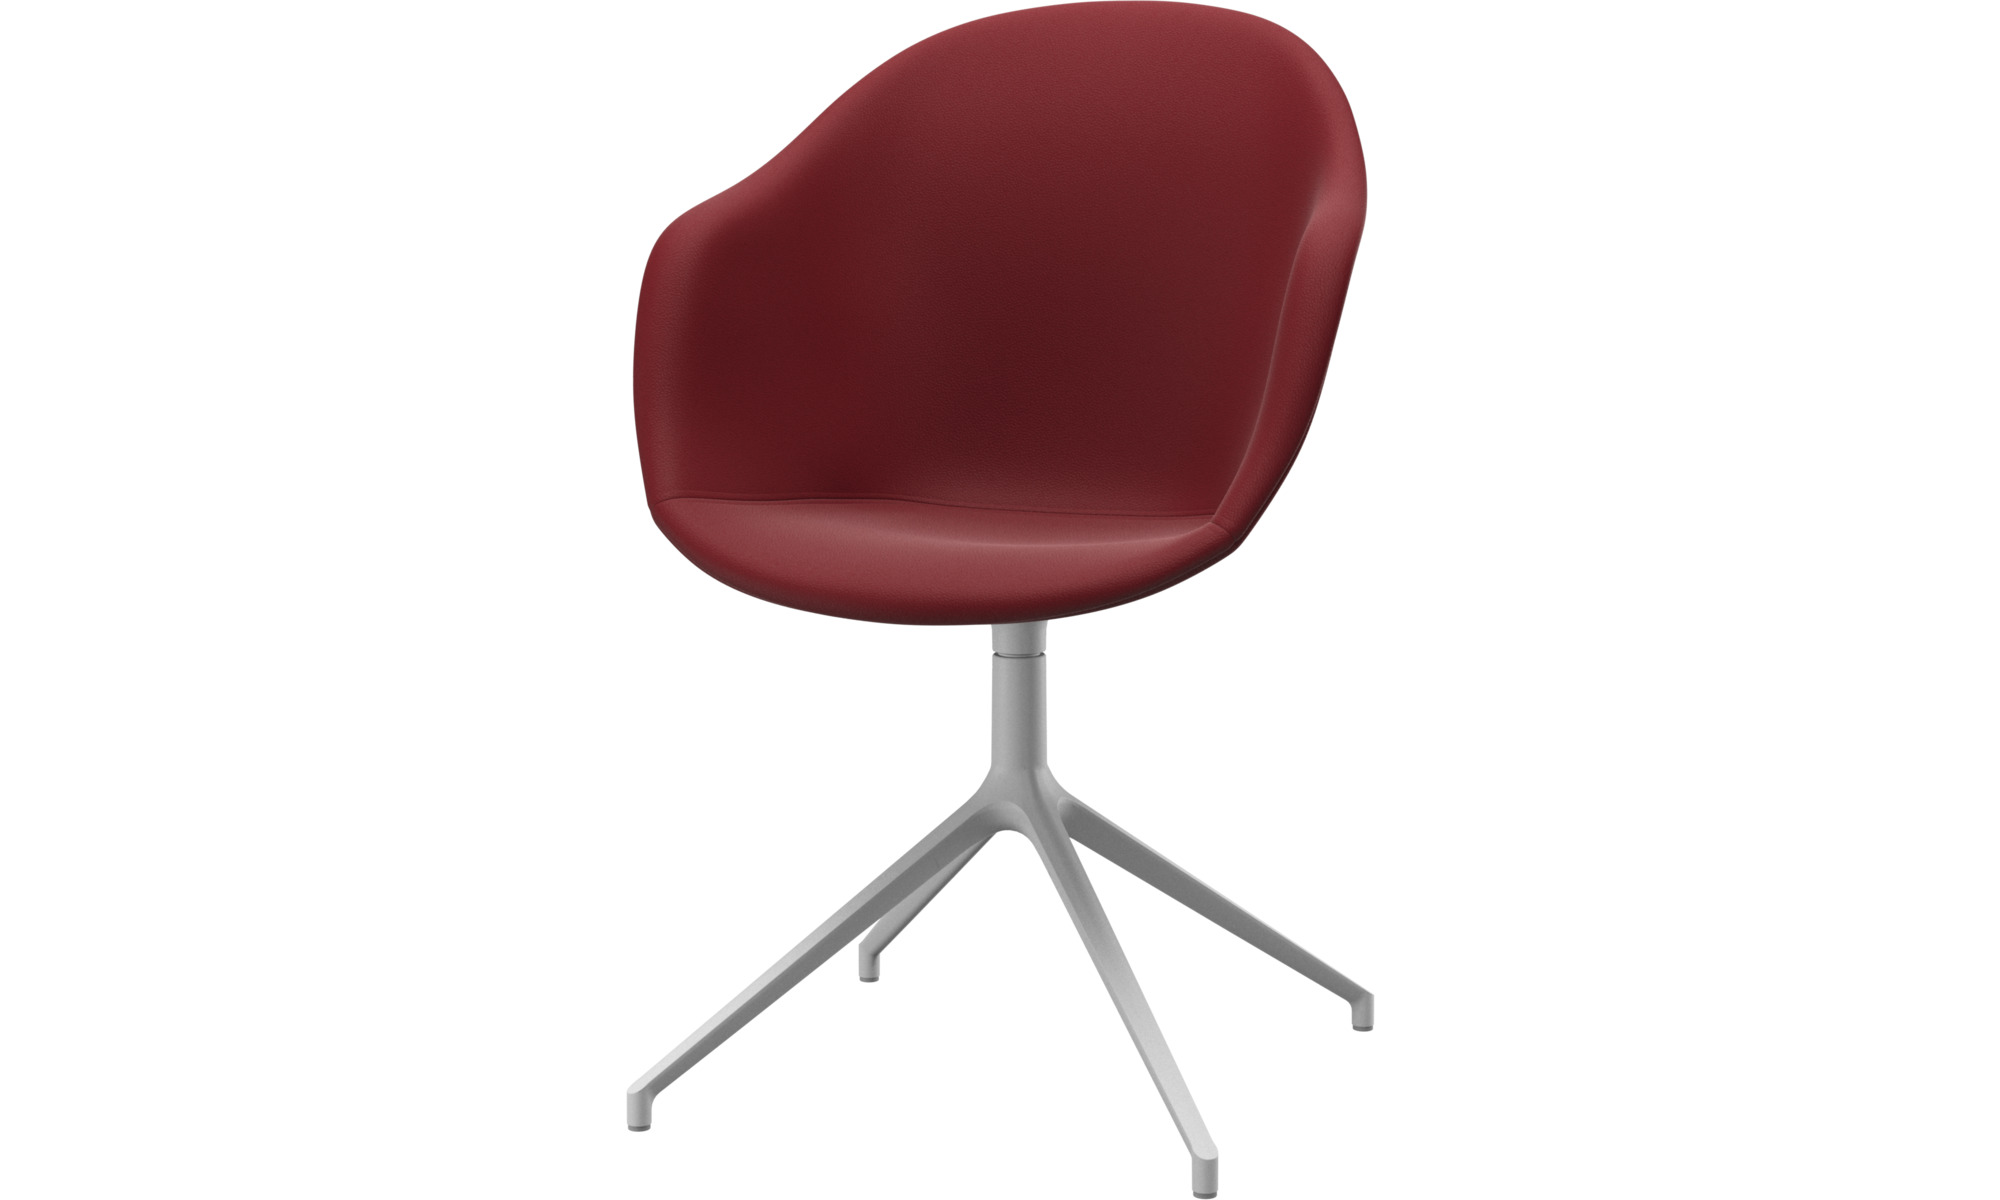 Home office chairs - Adelaide chair with swivel function - Red - Leather